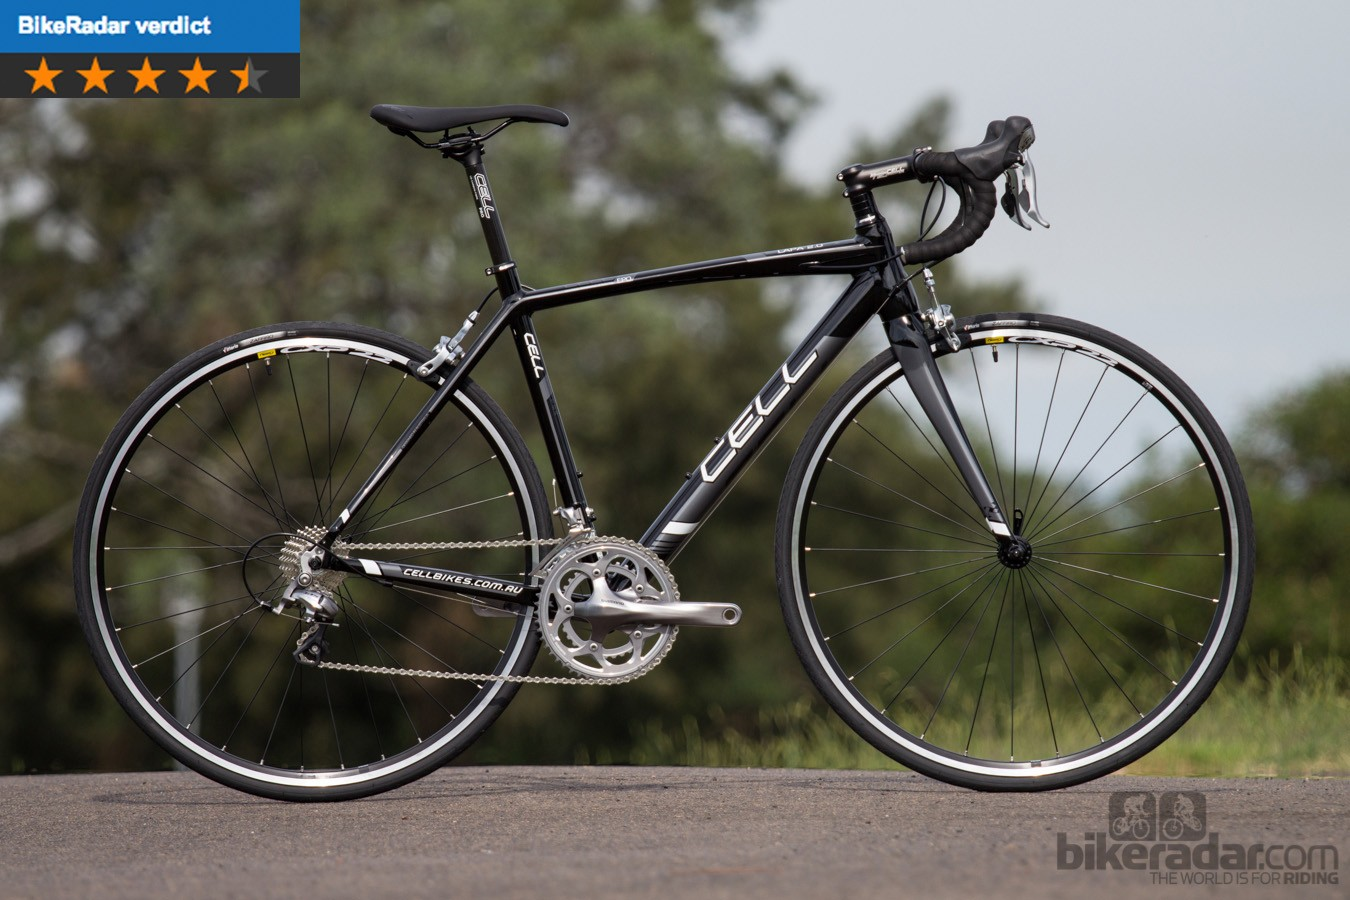 The Cell Lapa 2.0 is an impressive ride: smooth, controlled and super value, just watch the build quality